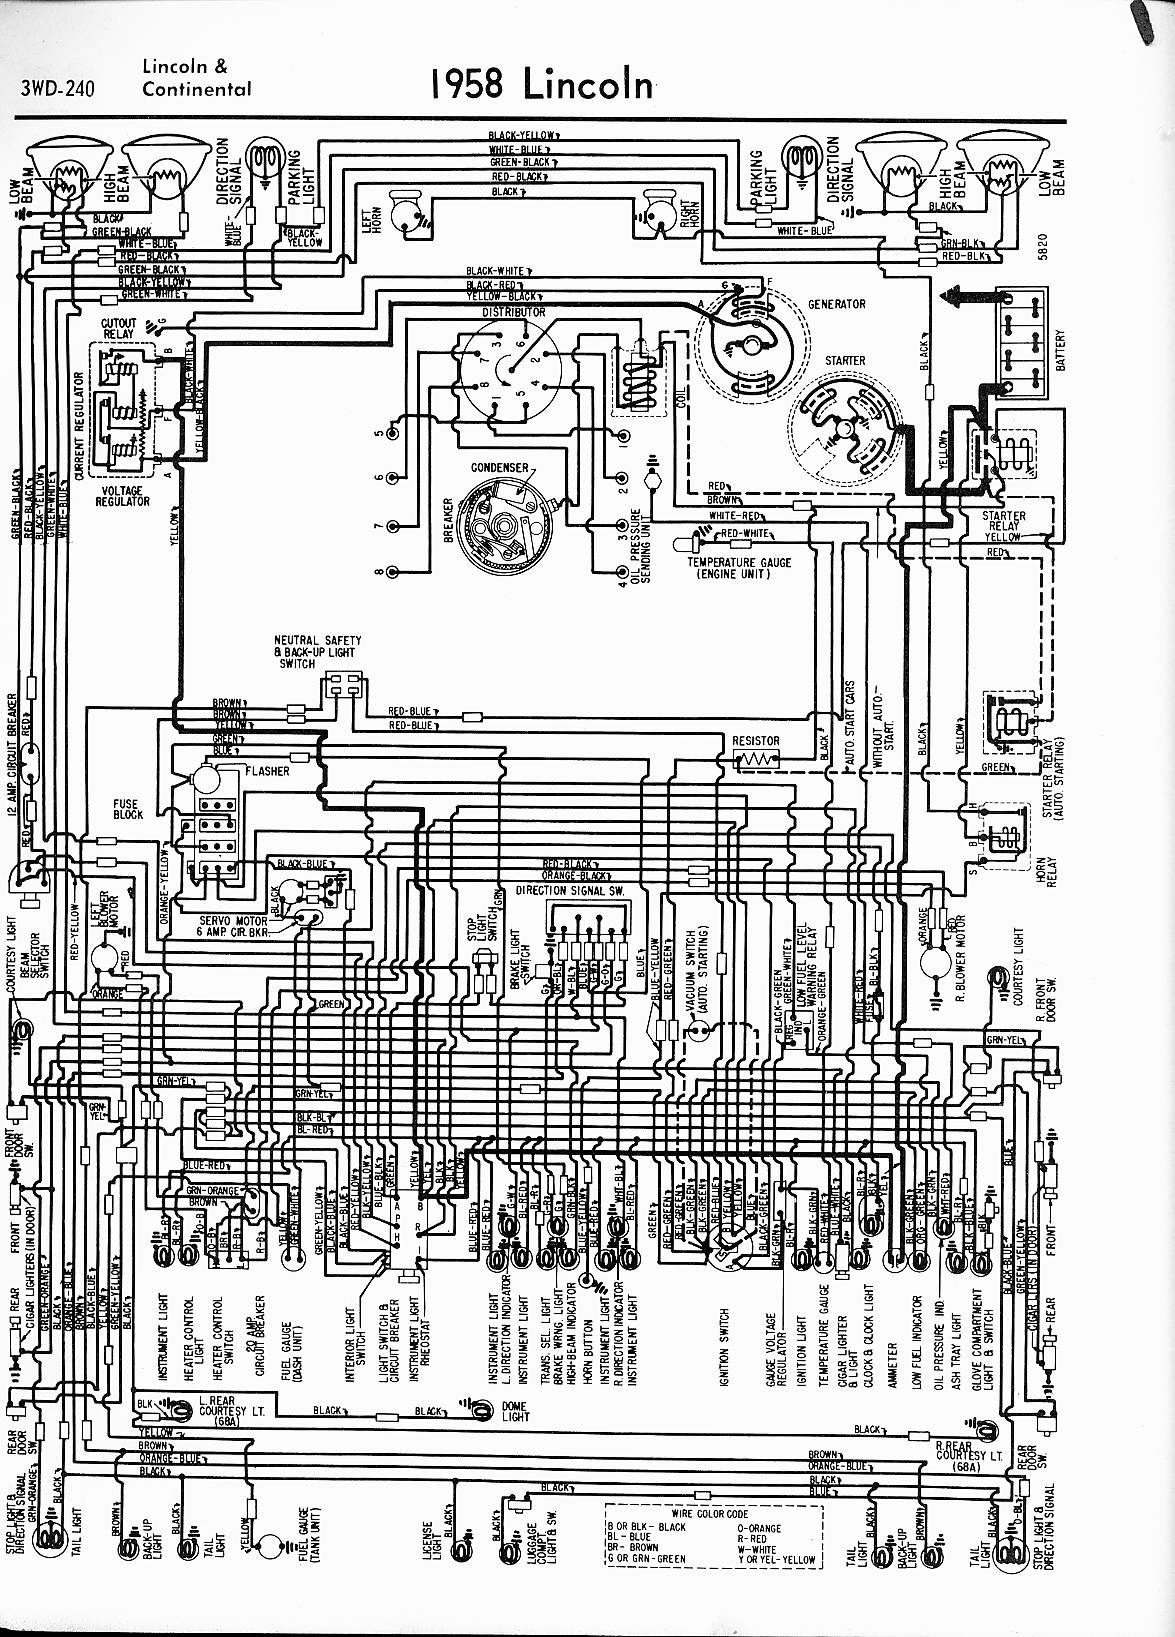 Wiring Diagrams Of 1961 Ford Lincoln Continental Part 1